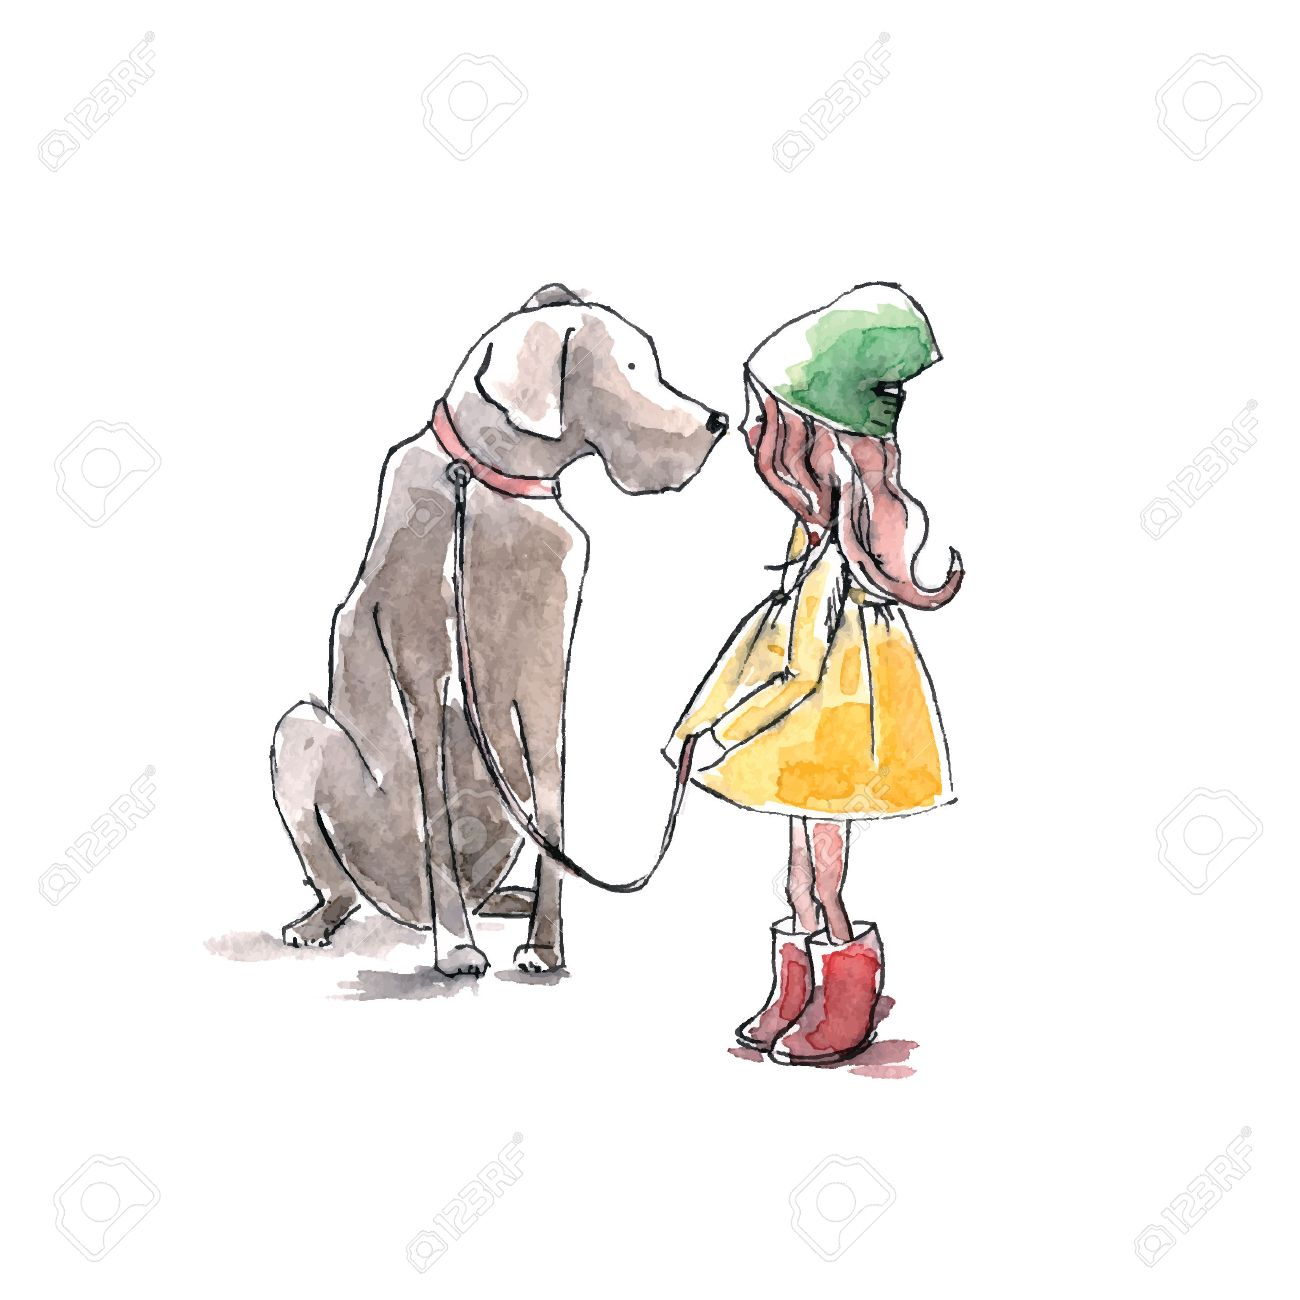 Hand drawn watercolor painting of Girl with big dog, friendship. - 57421908